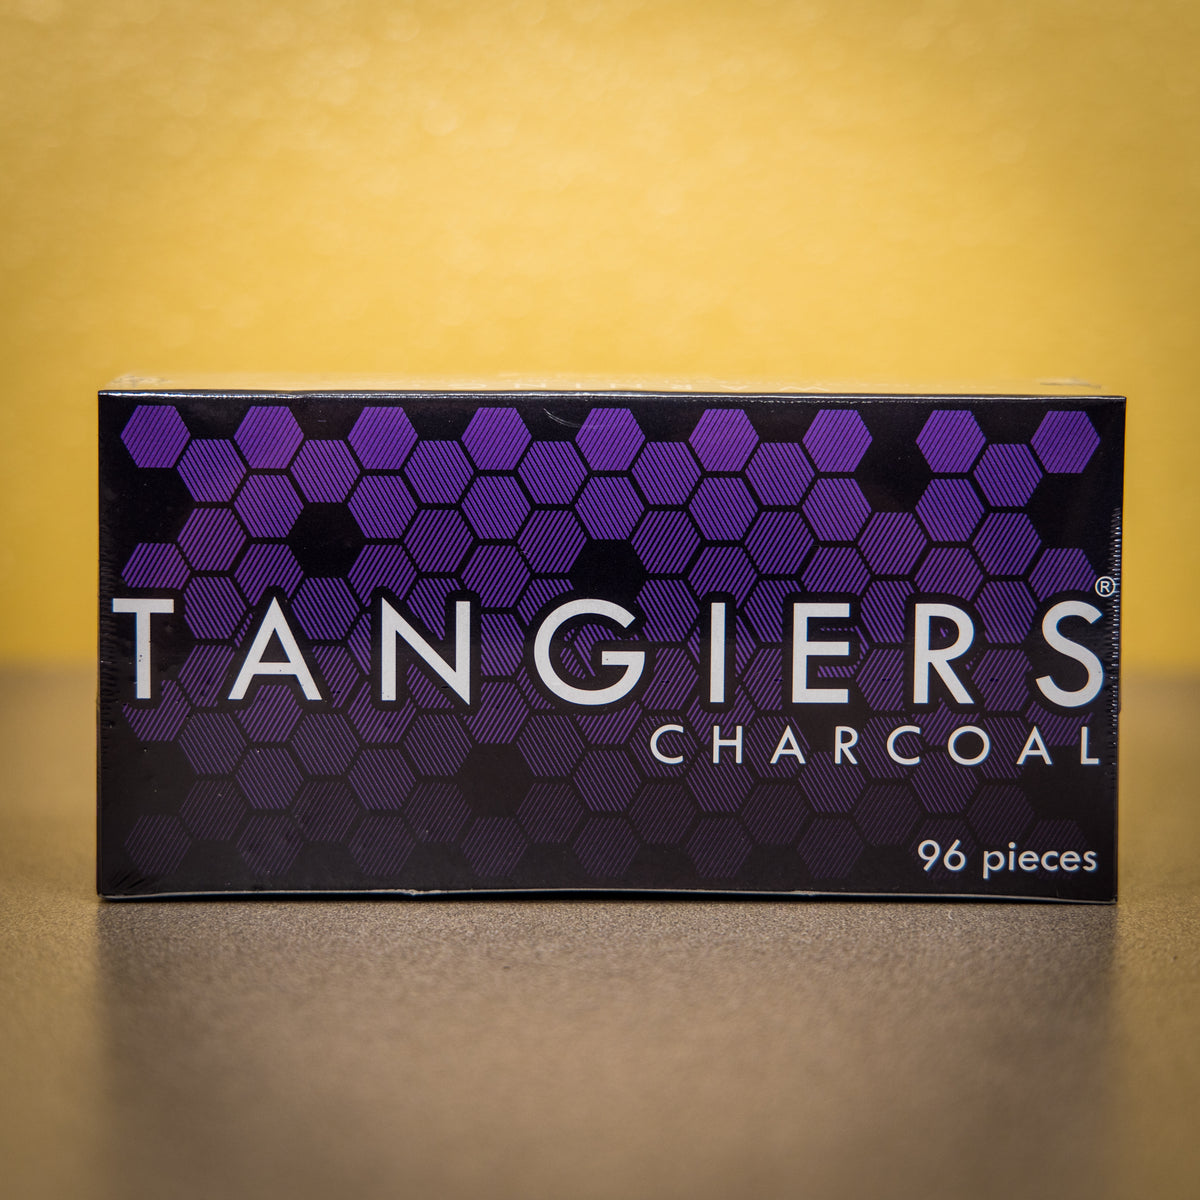 TANGIERS JAPANESE CHARCOAL (2nd Gen)